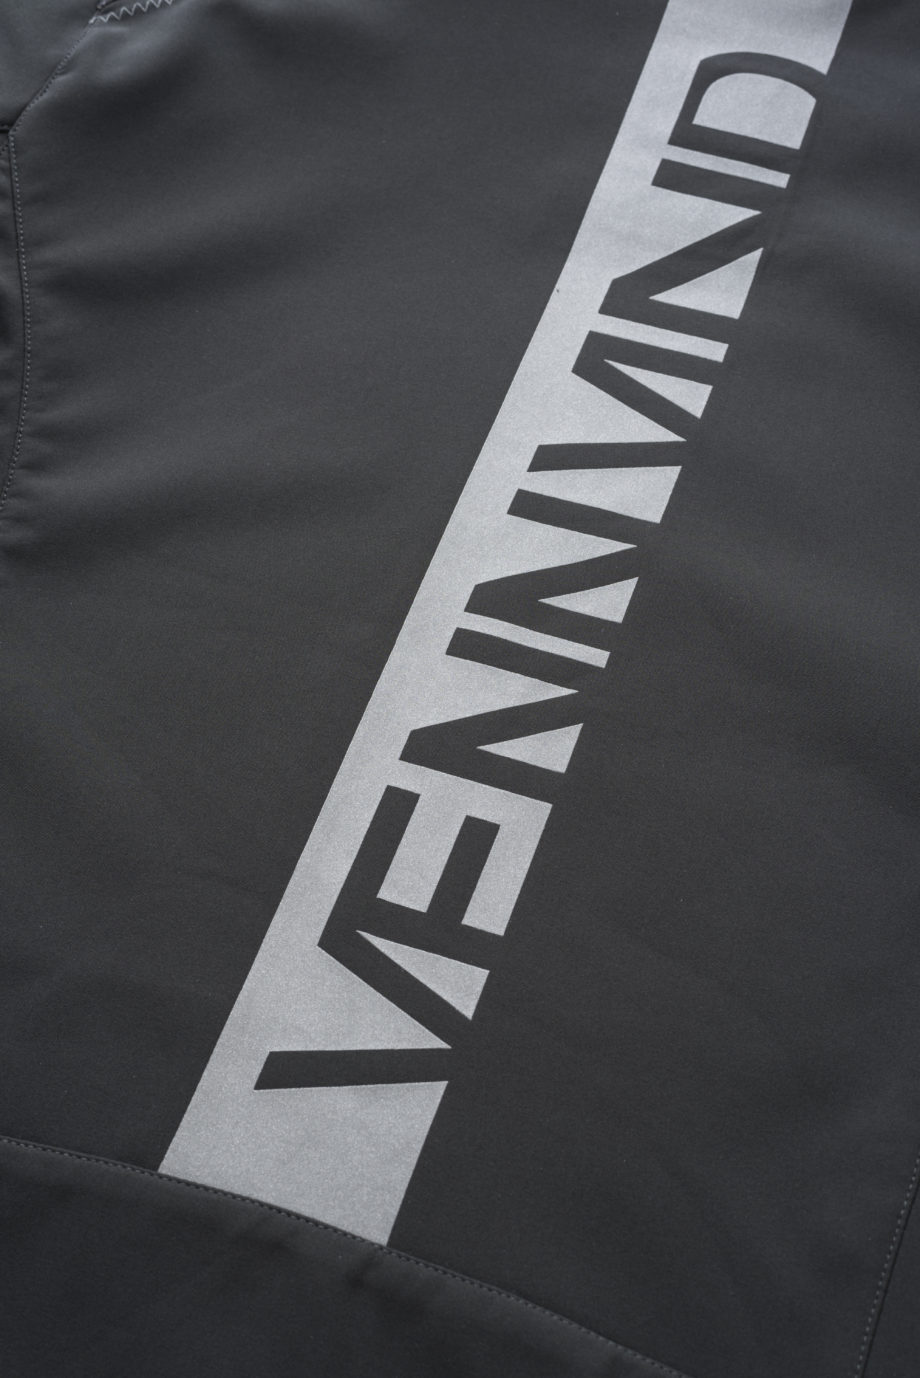 SOFTSHELL CLOSEUP VENNVIND LOGO ON THE BACK